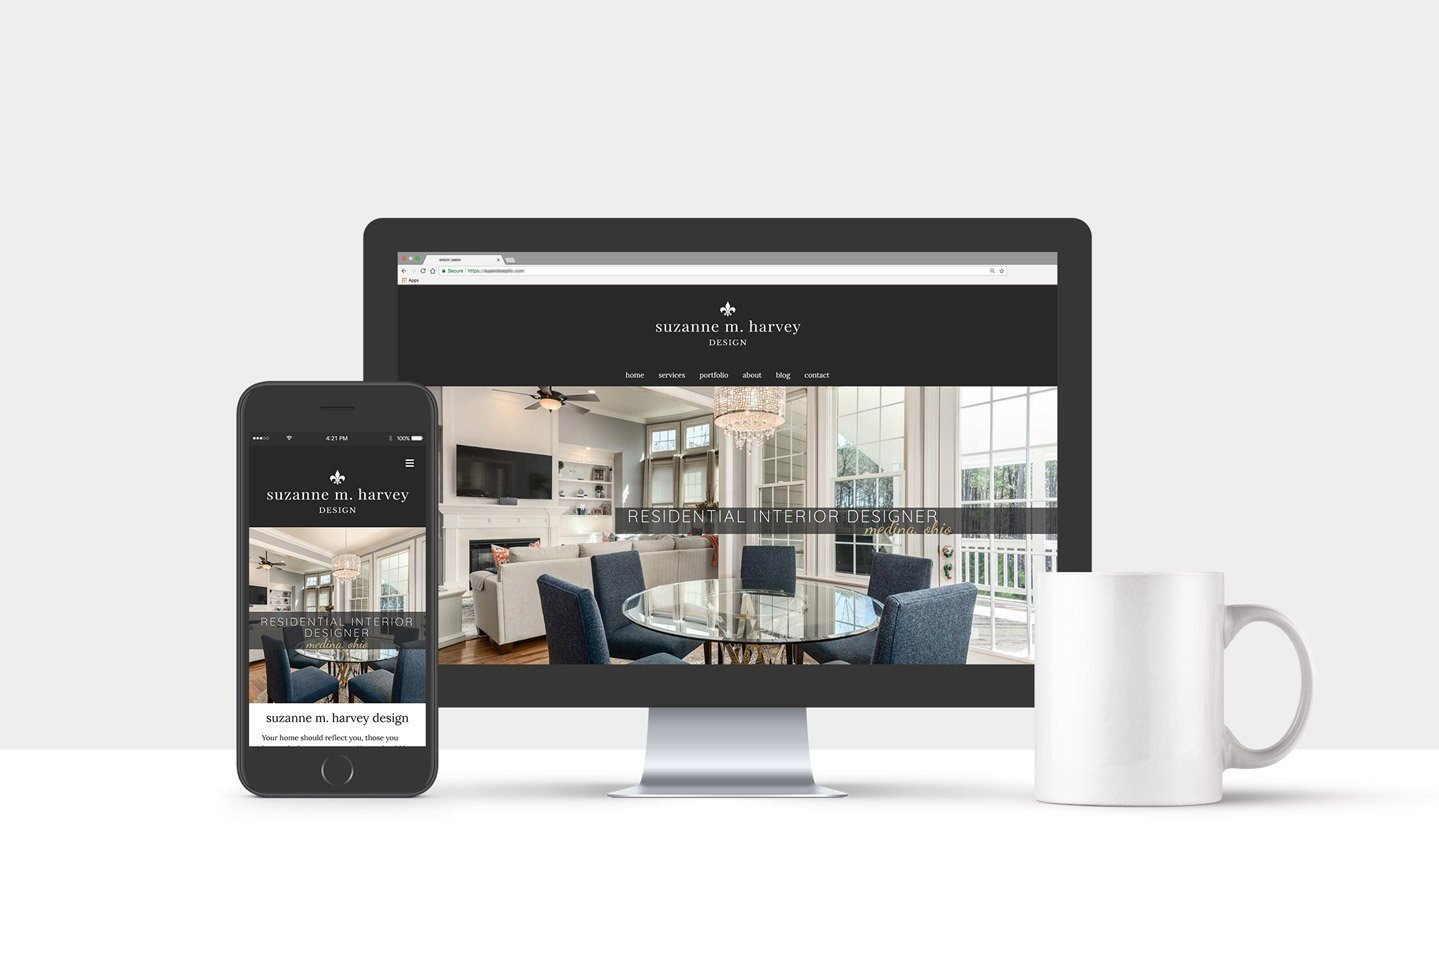 Interior Designer Website Design Project